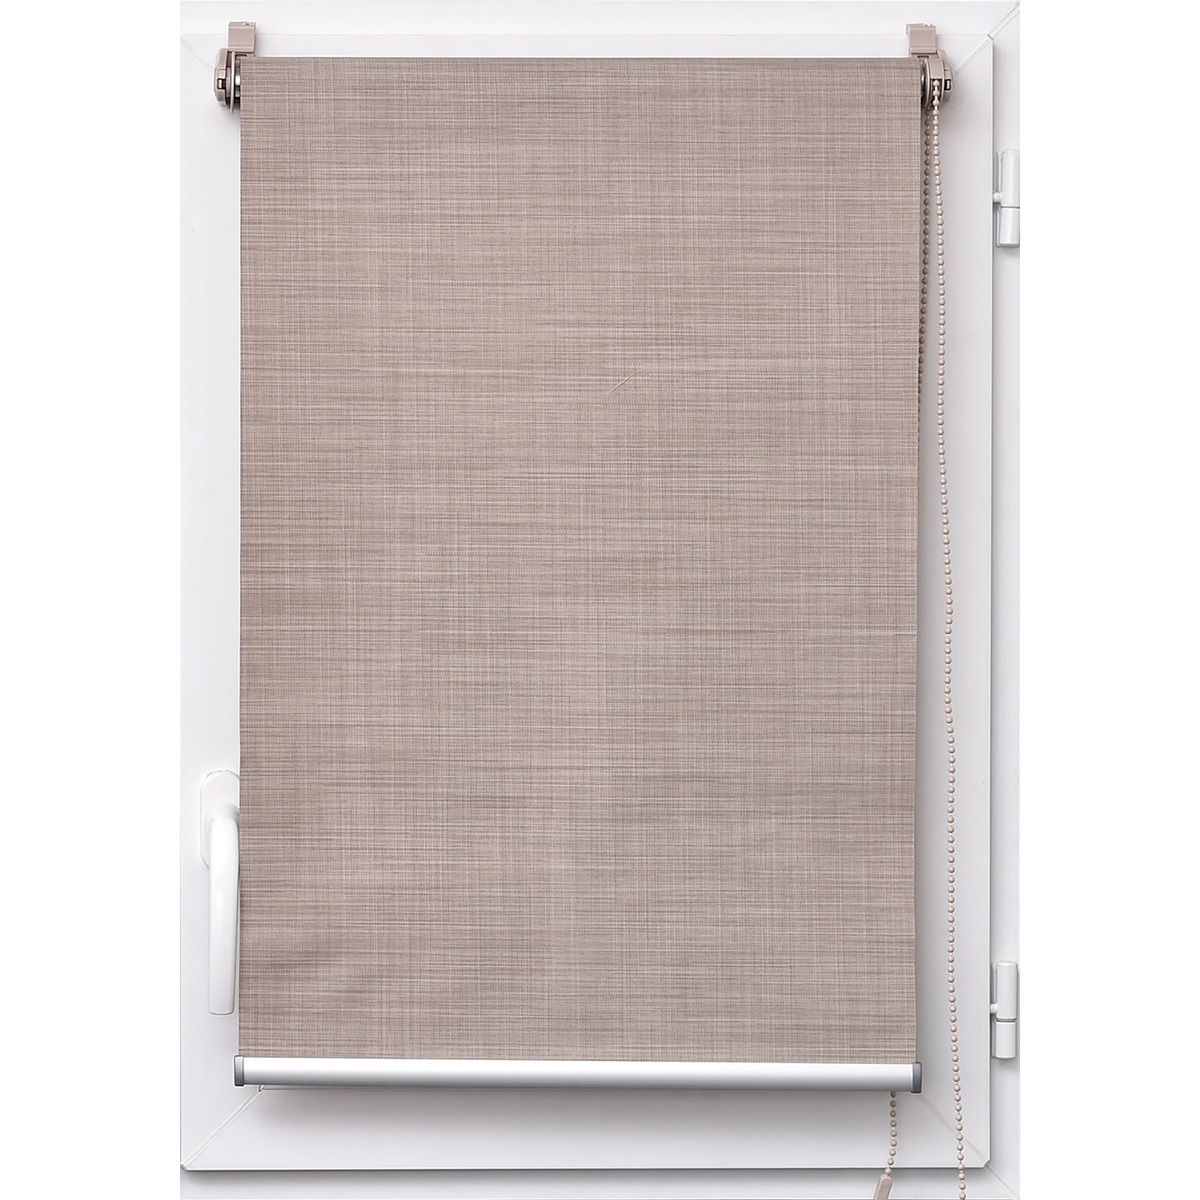 Store tamisant effet lin taupe Tao 60x180cm